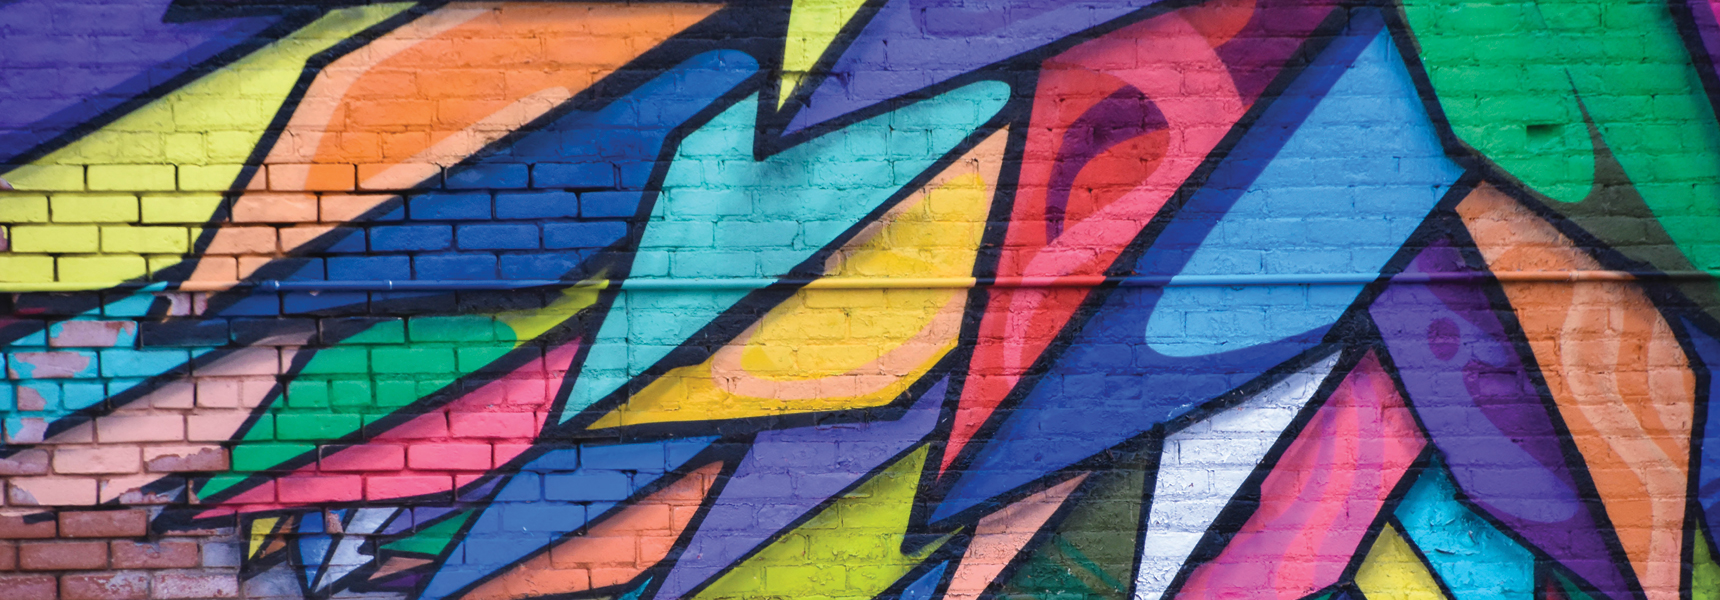 Brightly colored feather design on wall for background art